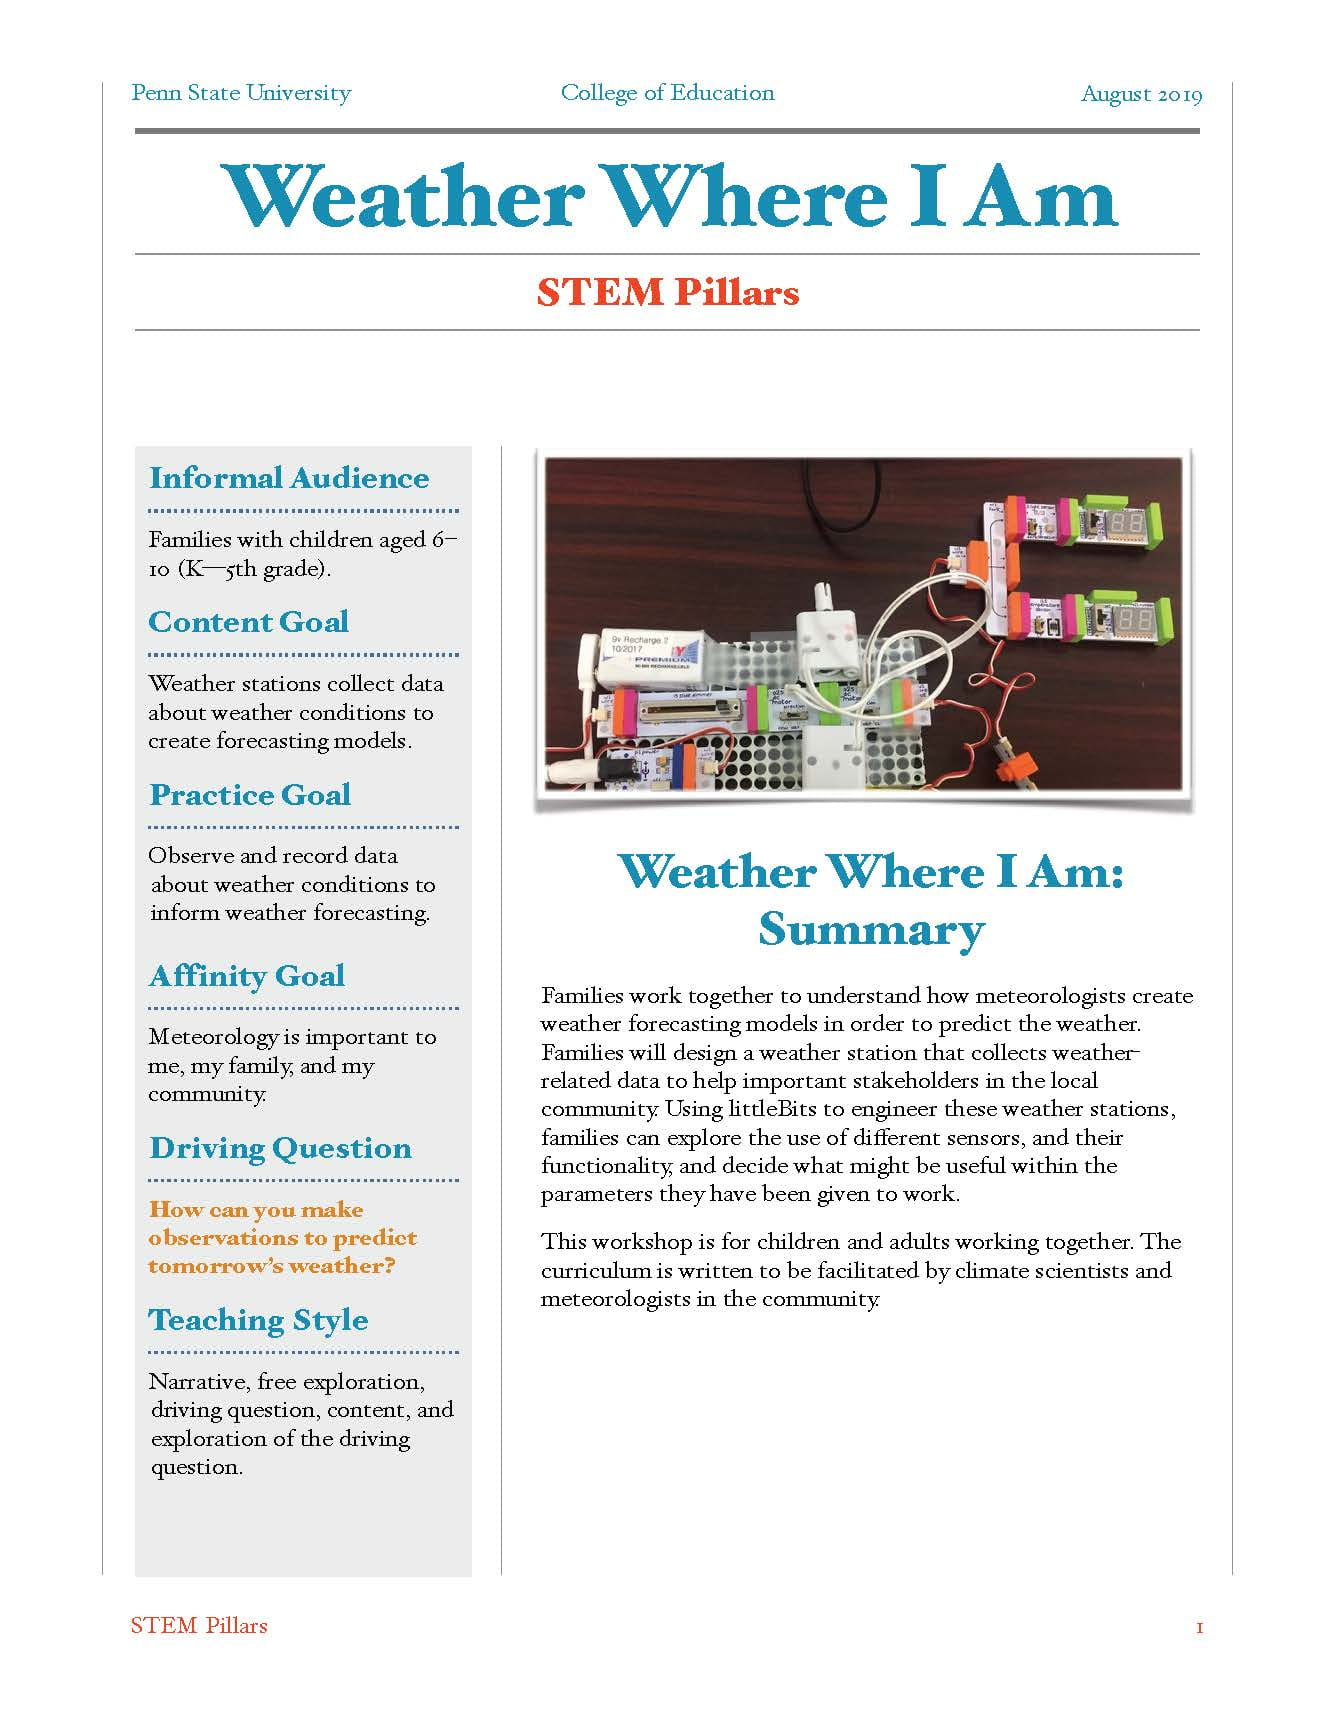 Download: Weather Where I Am